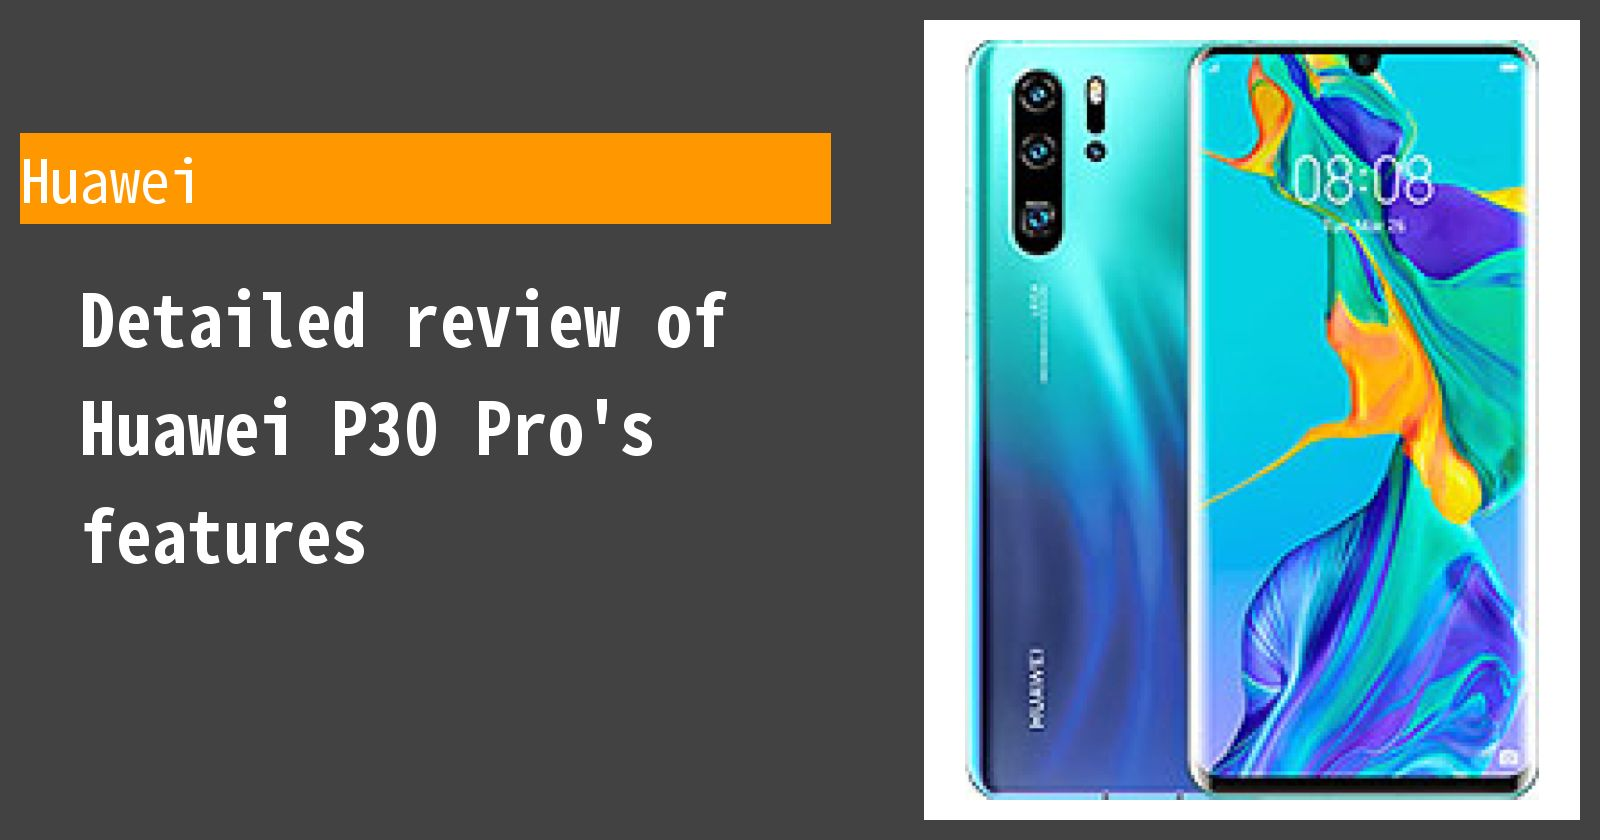 Detailed review of Huawei P30 Pro's features